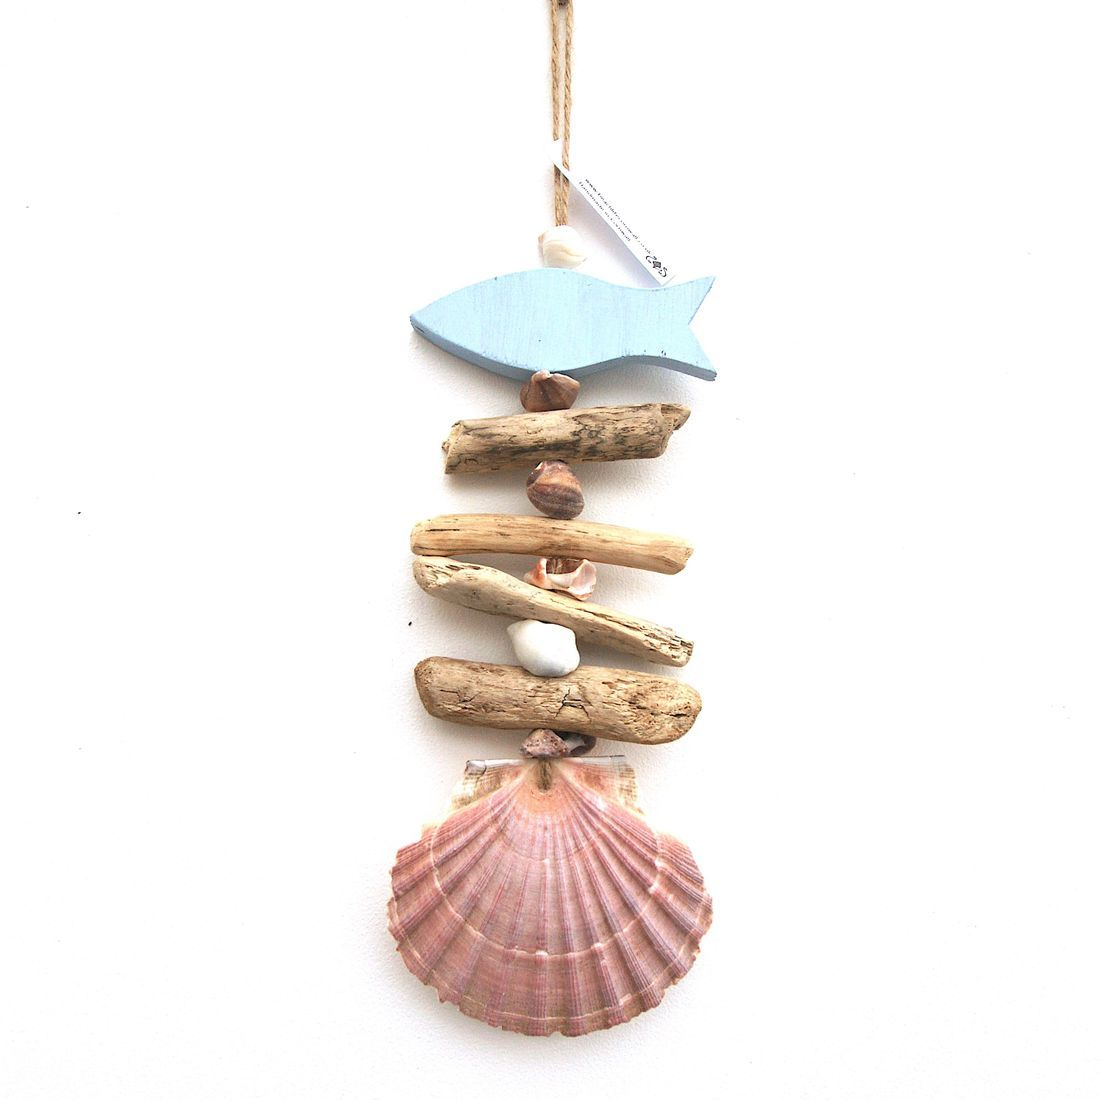 Driftwood and shell mobile 5